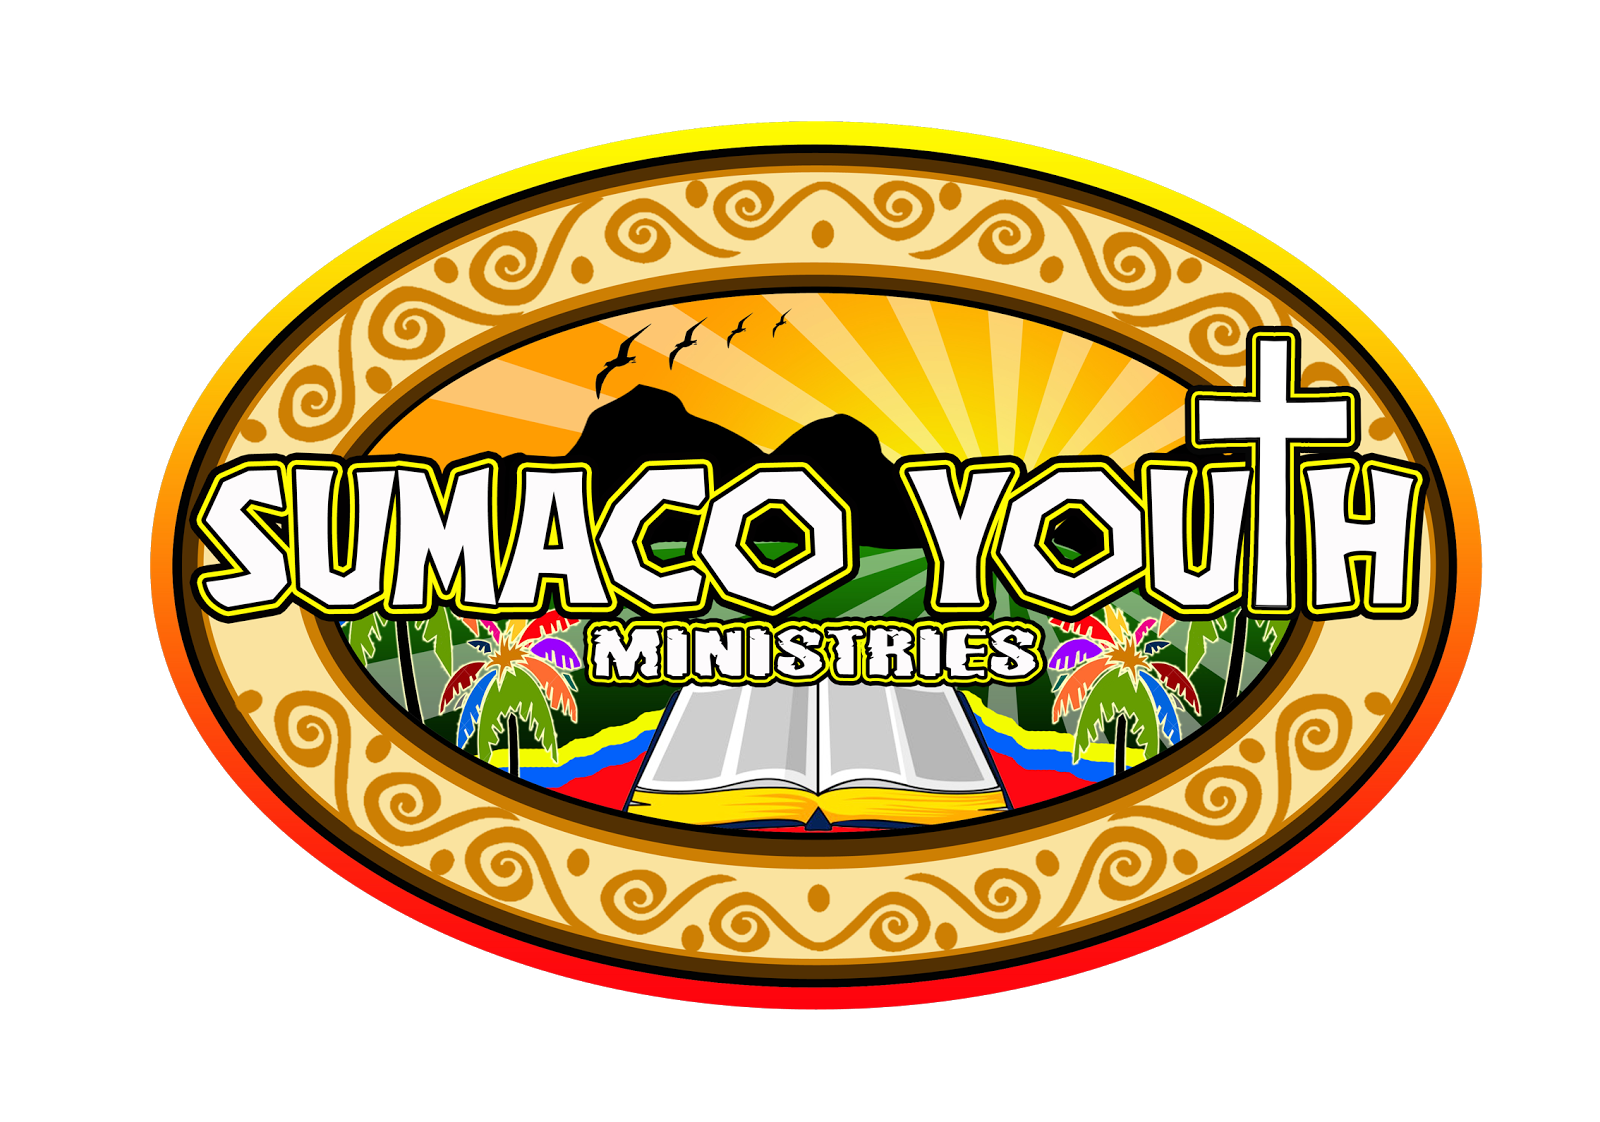 Sumaco Youth Organization